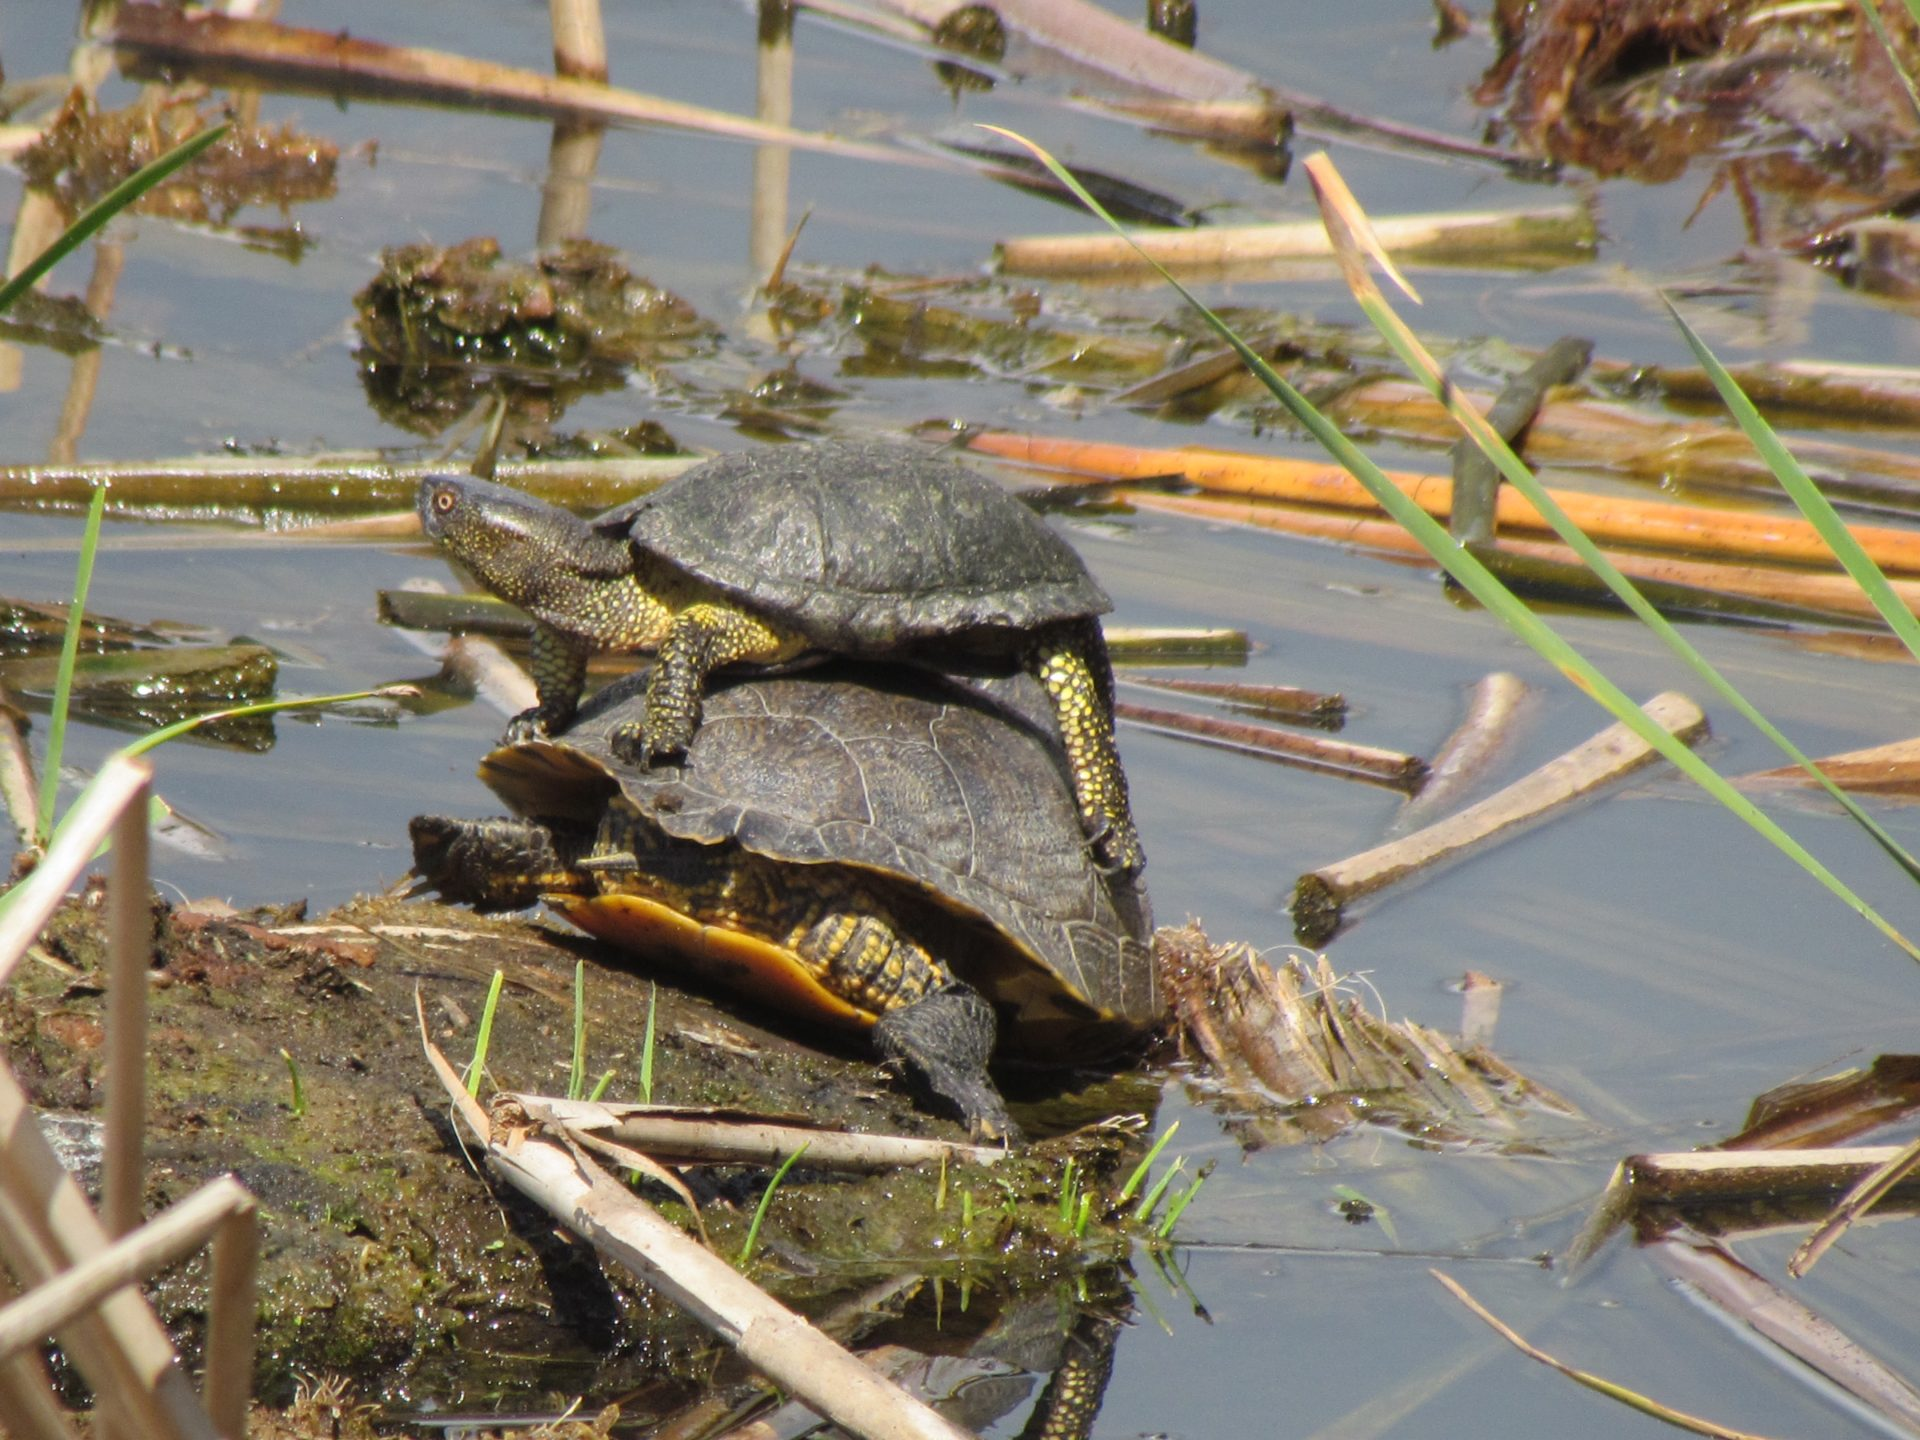 European Pond Turtle sunbathing